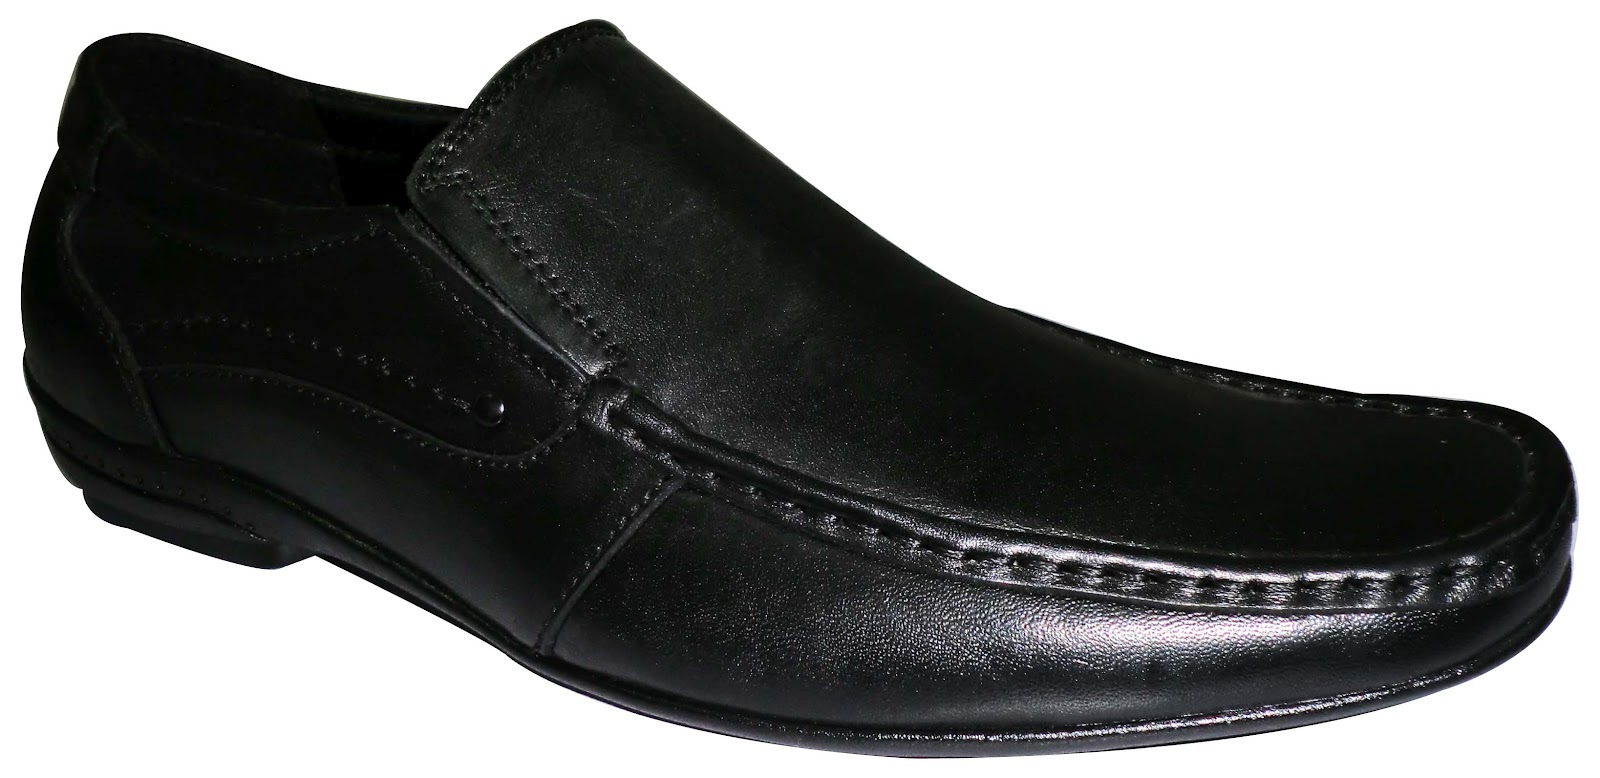 Image Result For Comfortable Dressy Walking Shoes